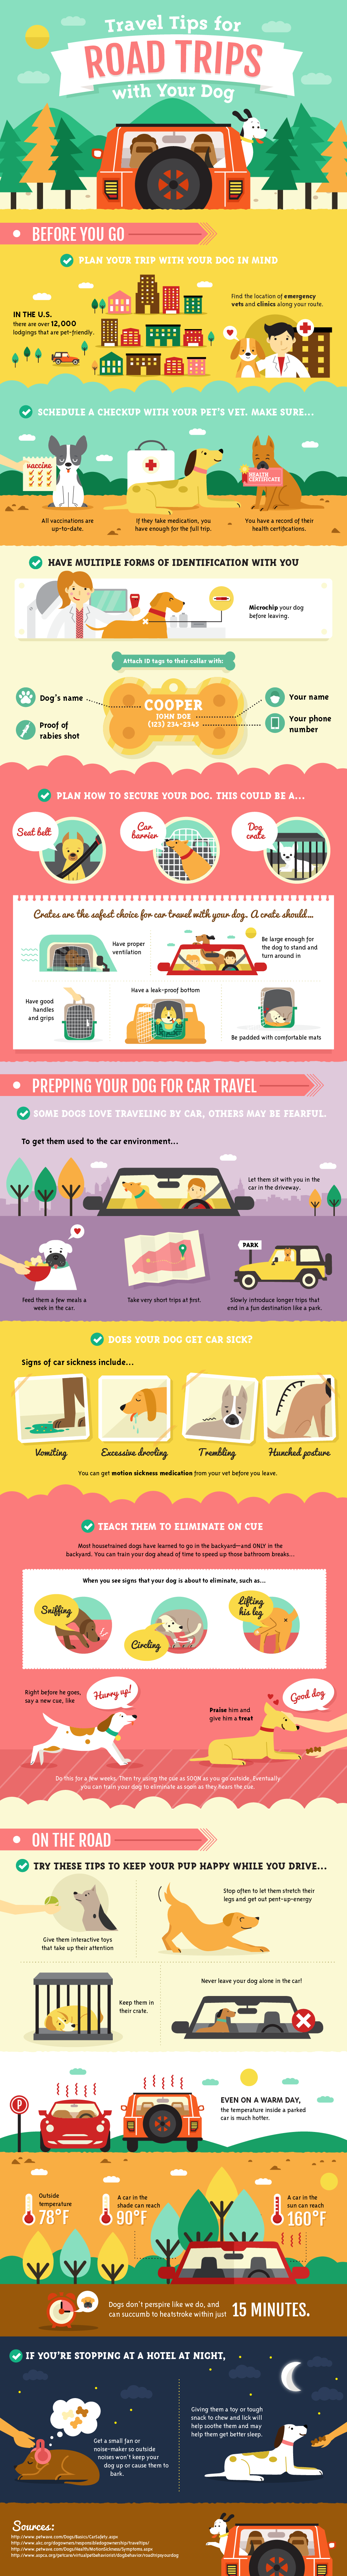 Traveling with Dogs Infographic: Travel Tips for Road Trips with Your Dog.